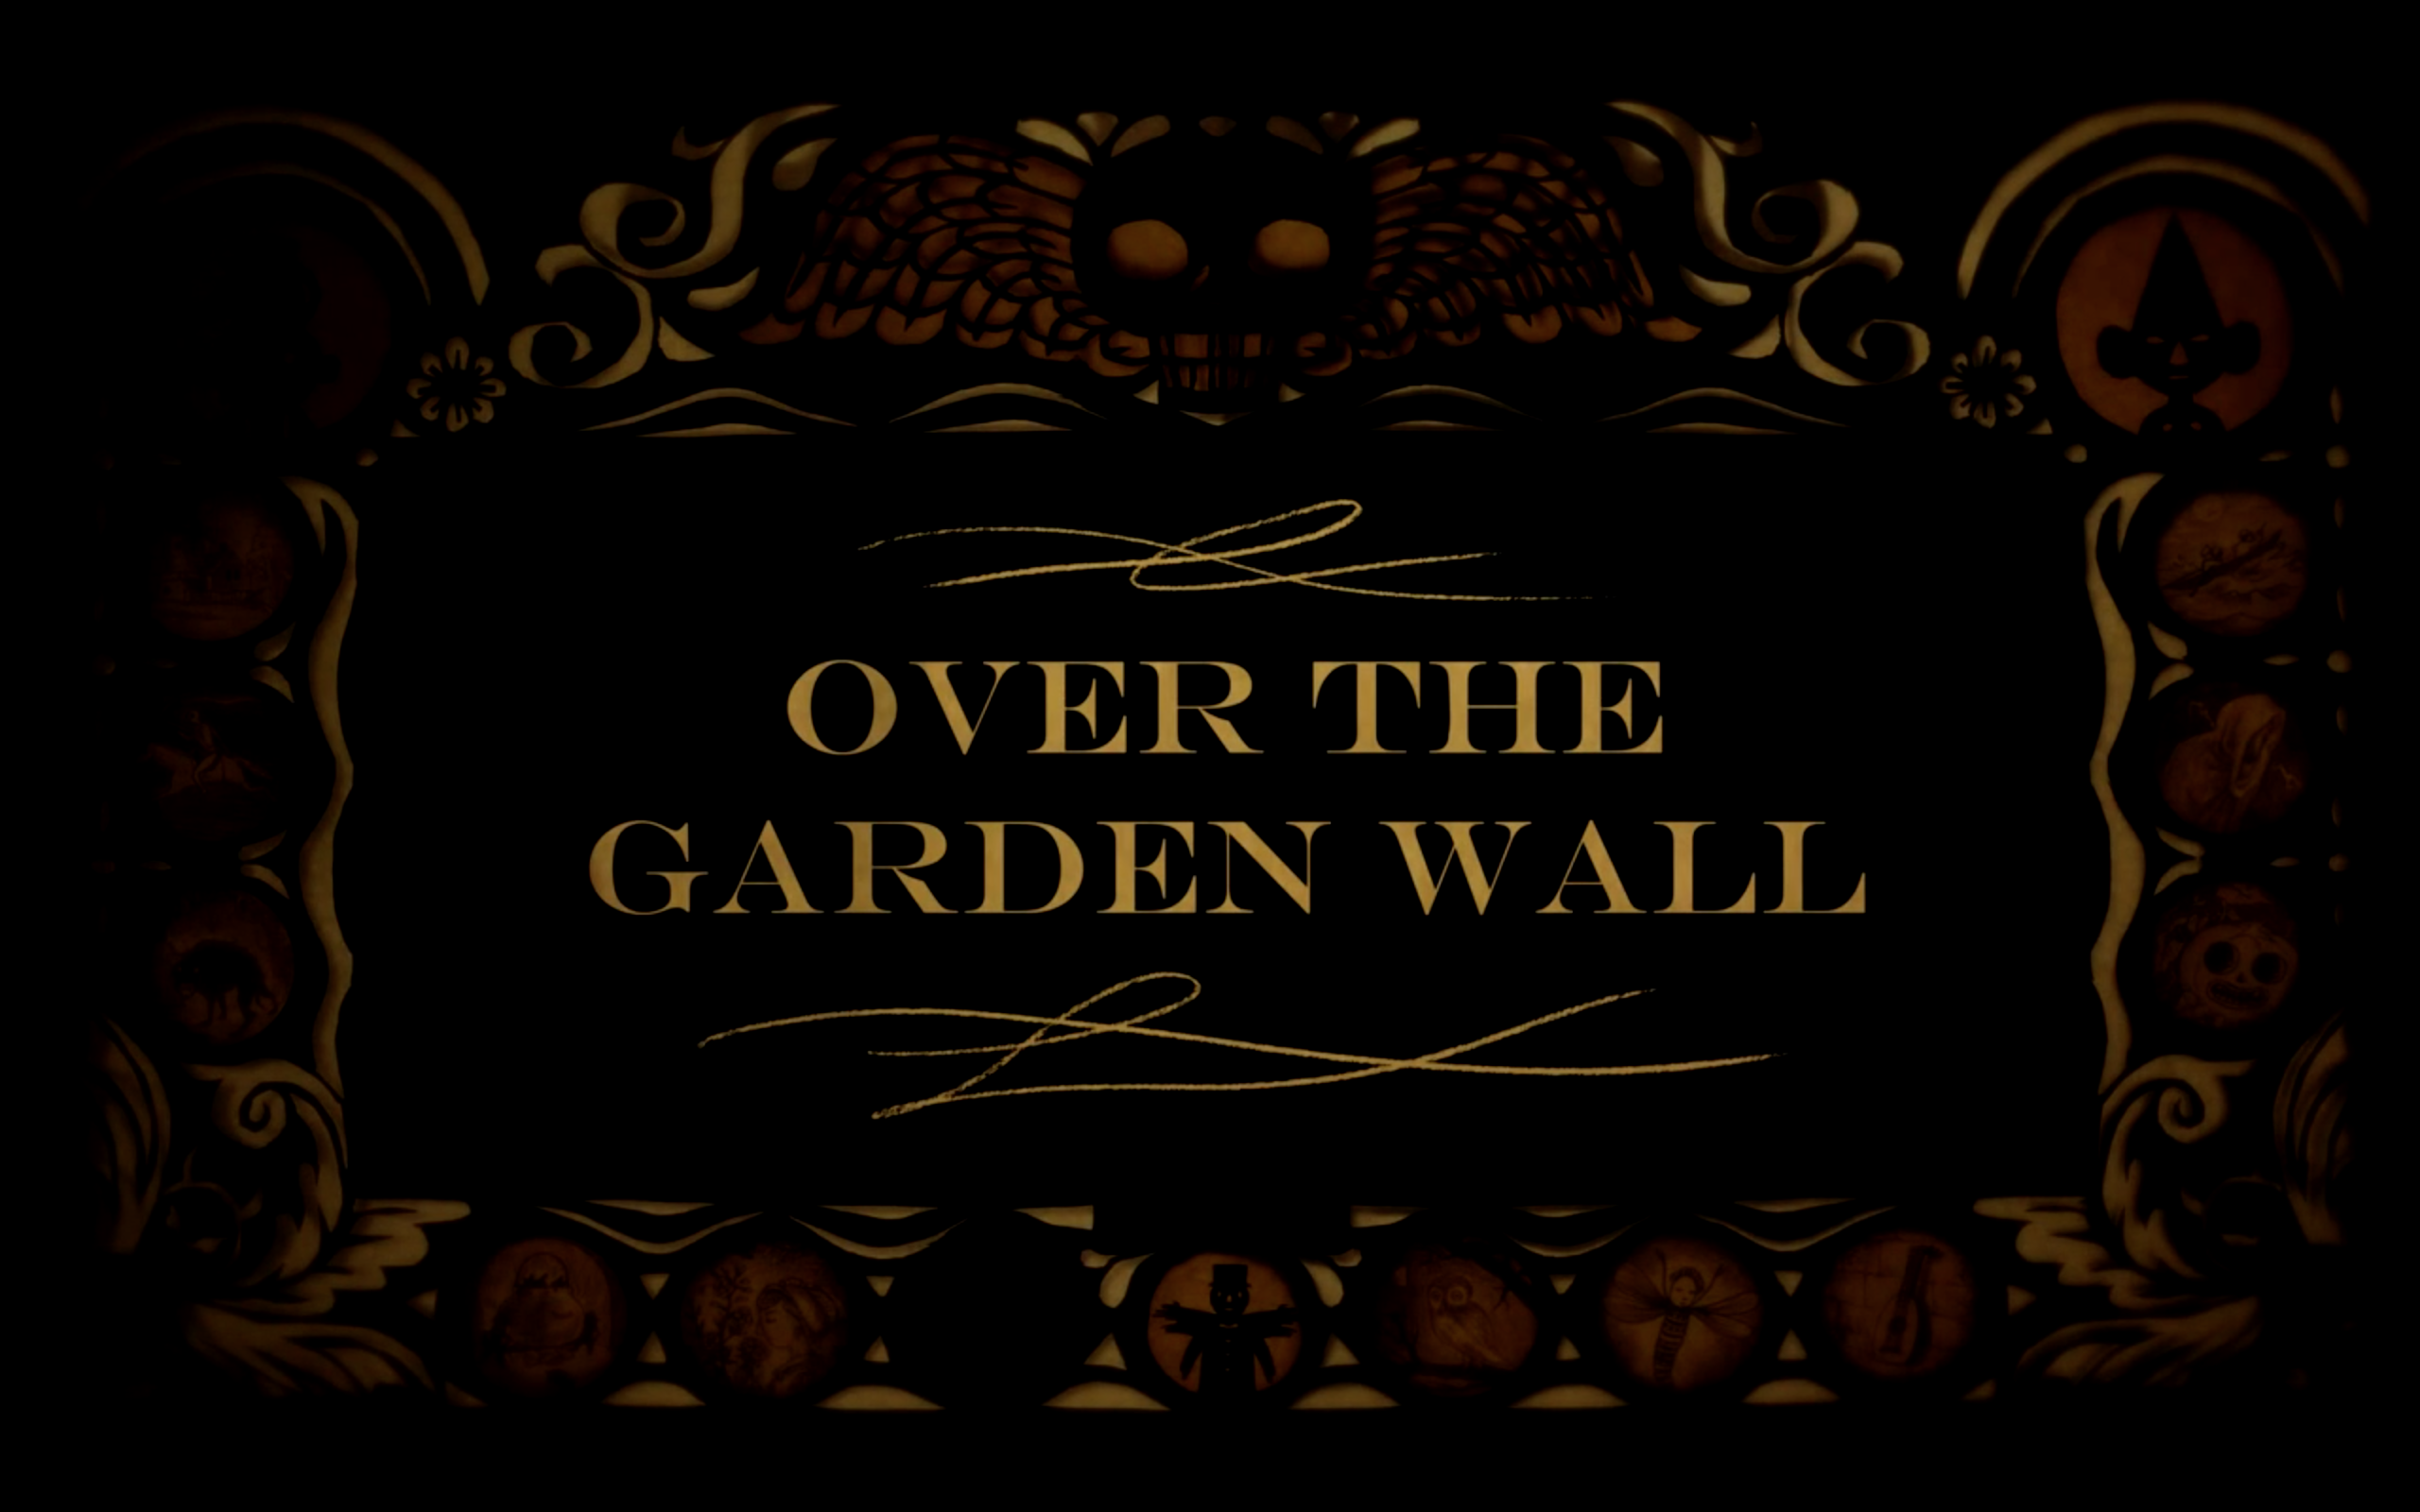 Over The Garden Wall Wallpapers Top Free Over The Garden Wall